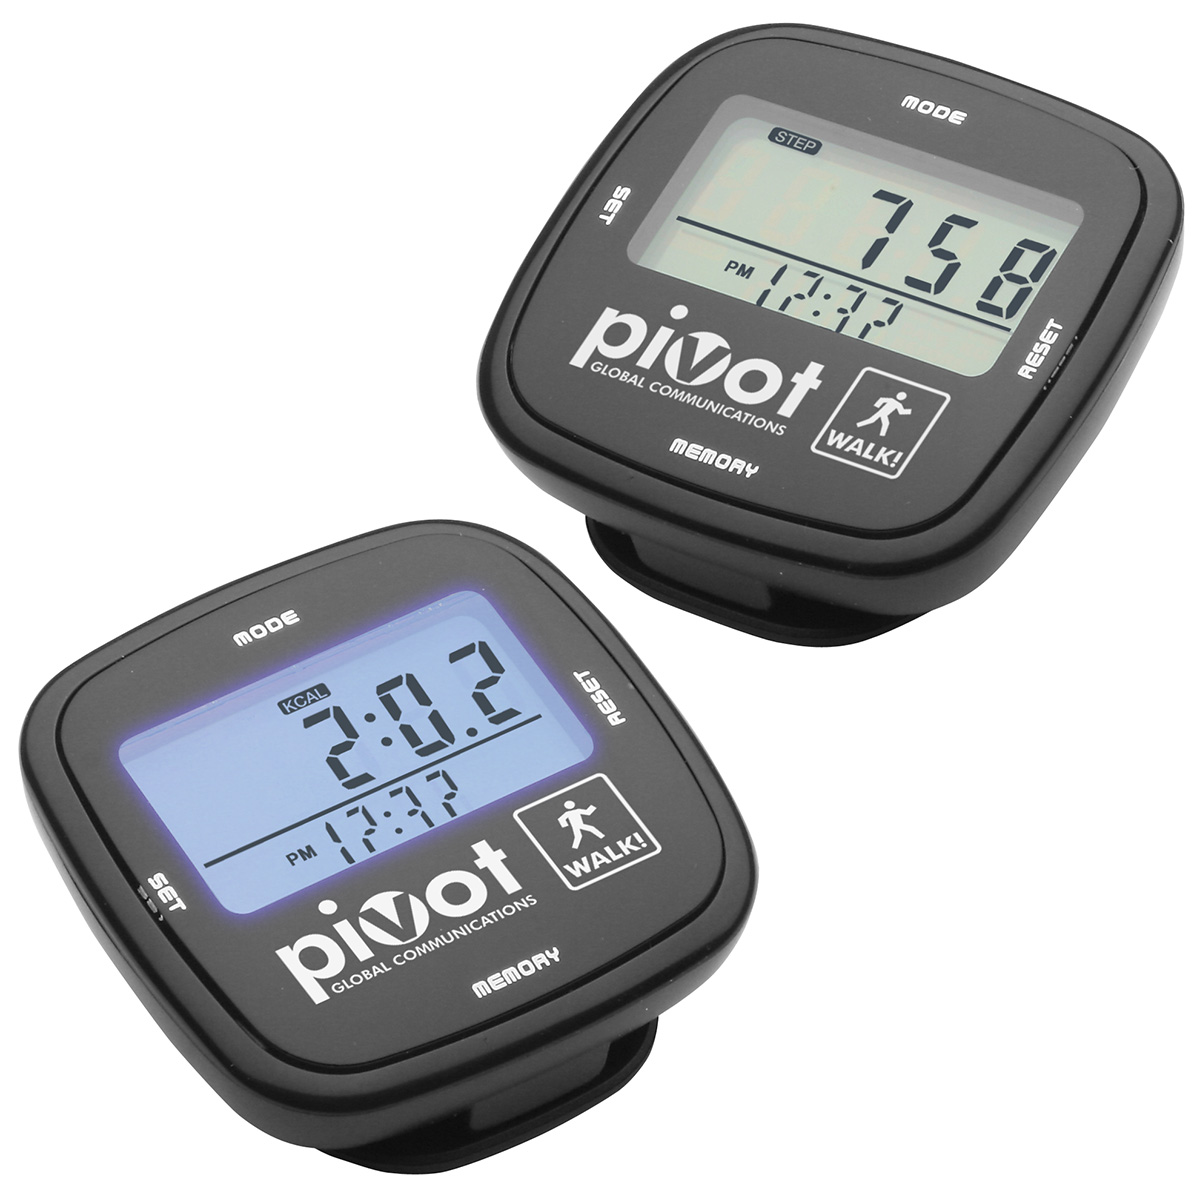 Touch Screen Multifunction Pedometer, WHF-TS10 - 1 Colour Imprint